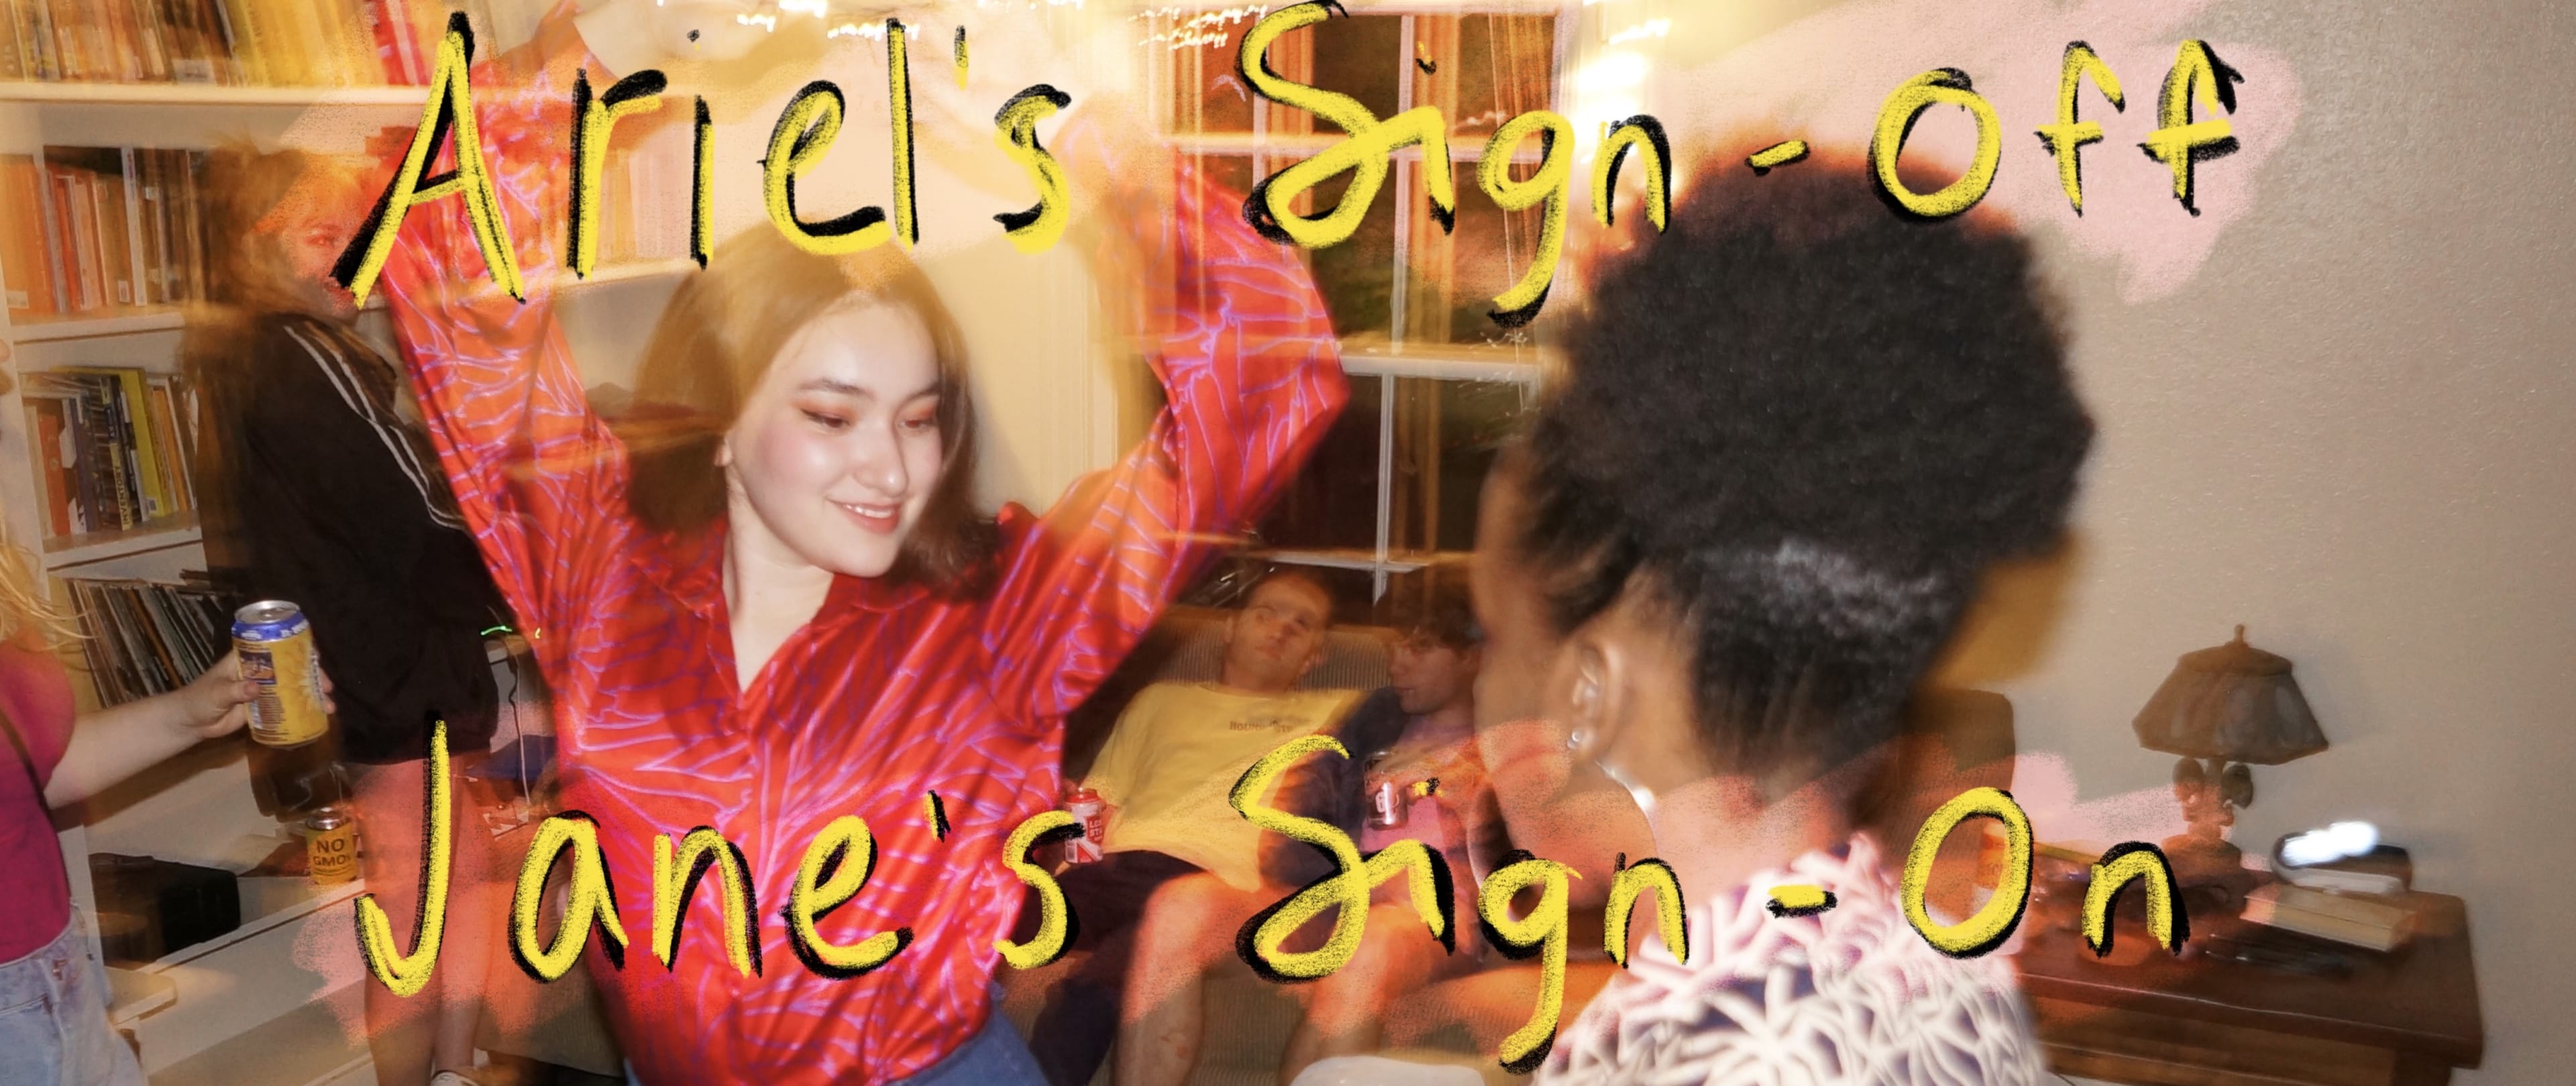 Ariel's Sign-Off, Jane's Sign-On: An Interview between Station Managers